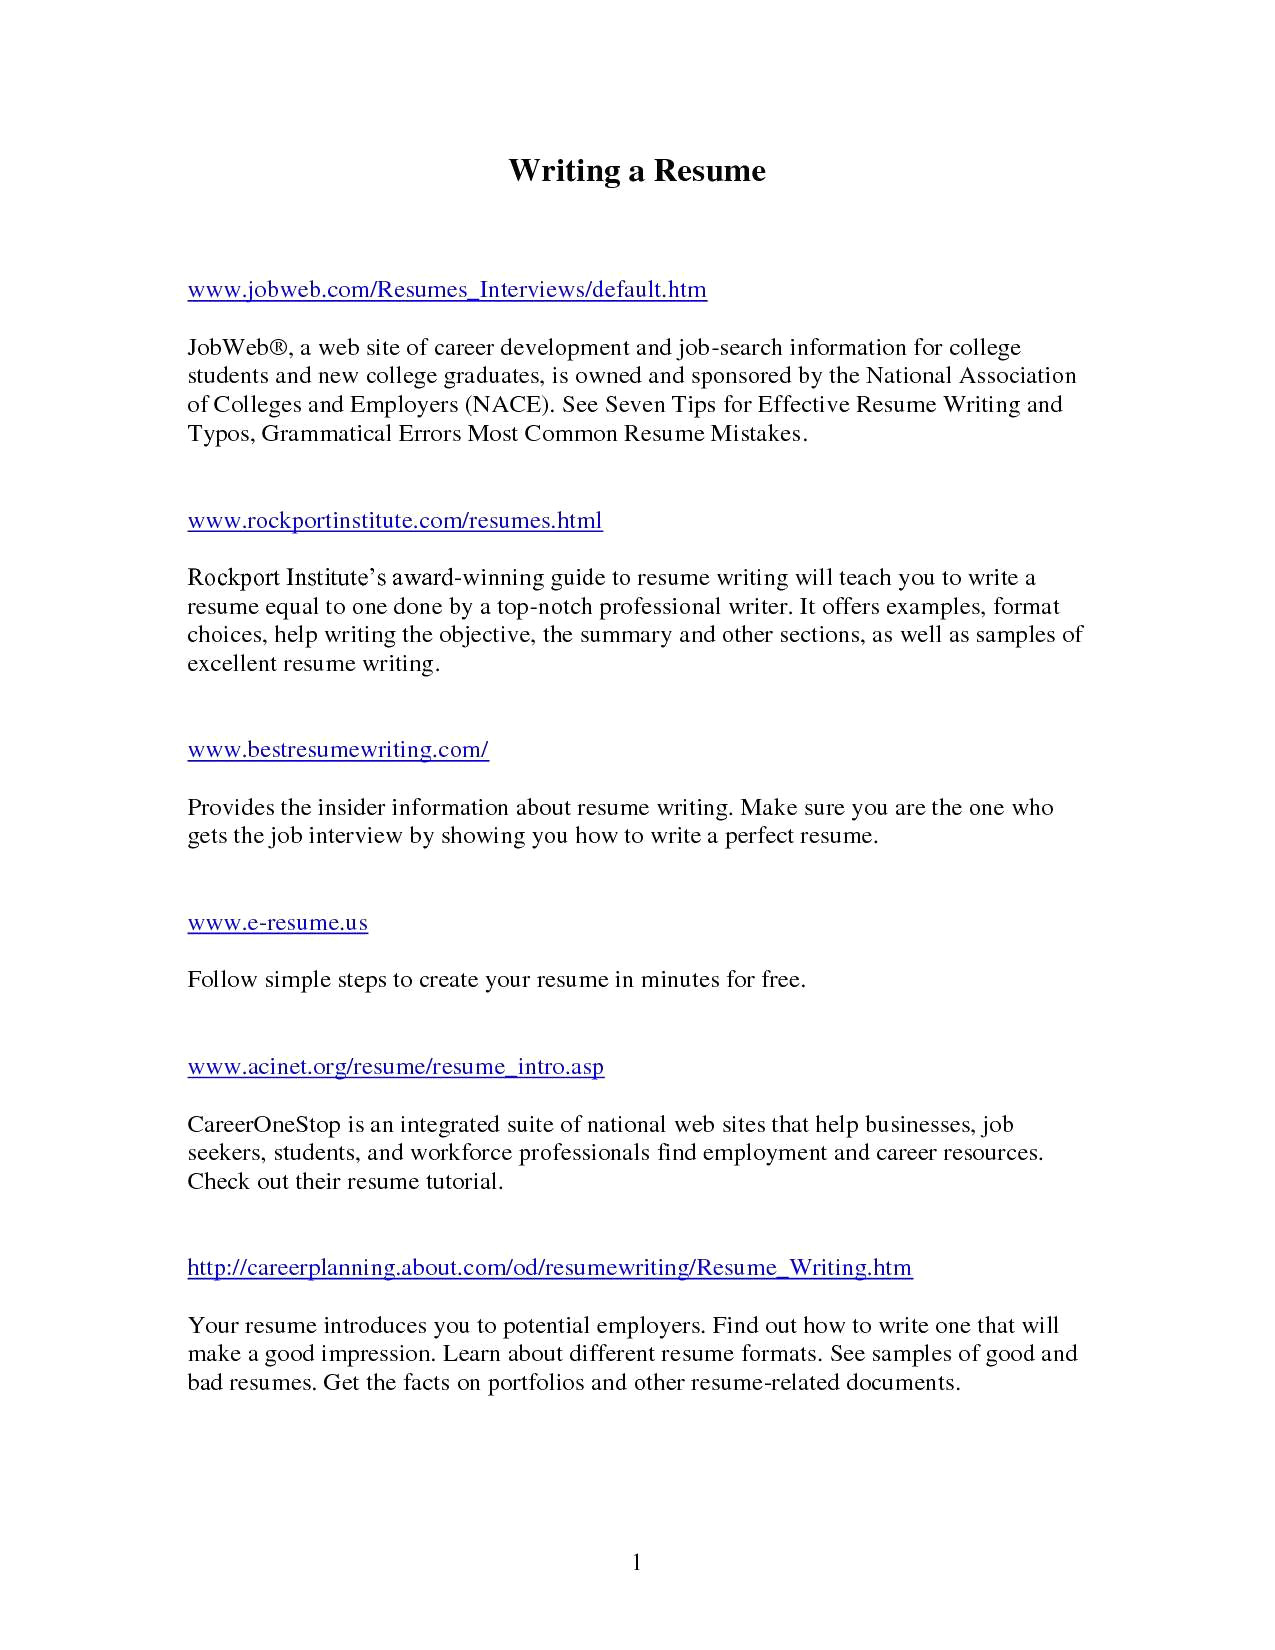 Free Online Resume Writer - 42 Awesome Writing A Professional Resume